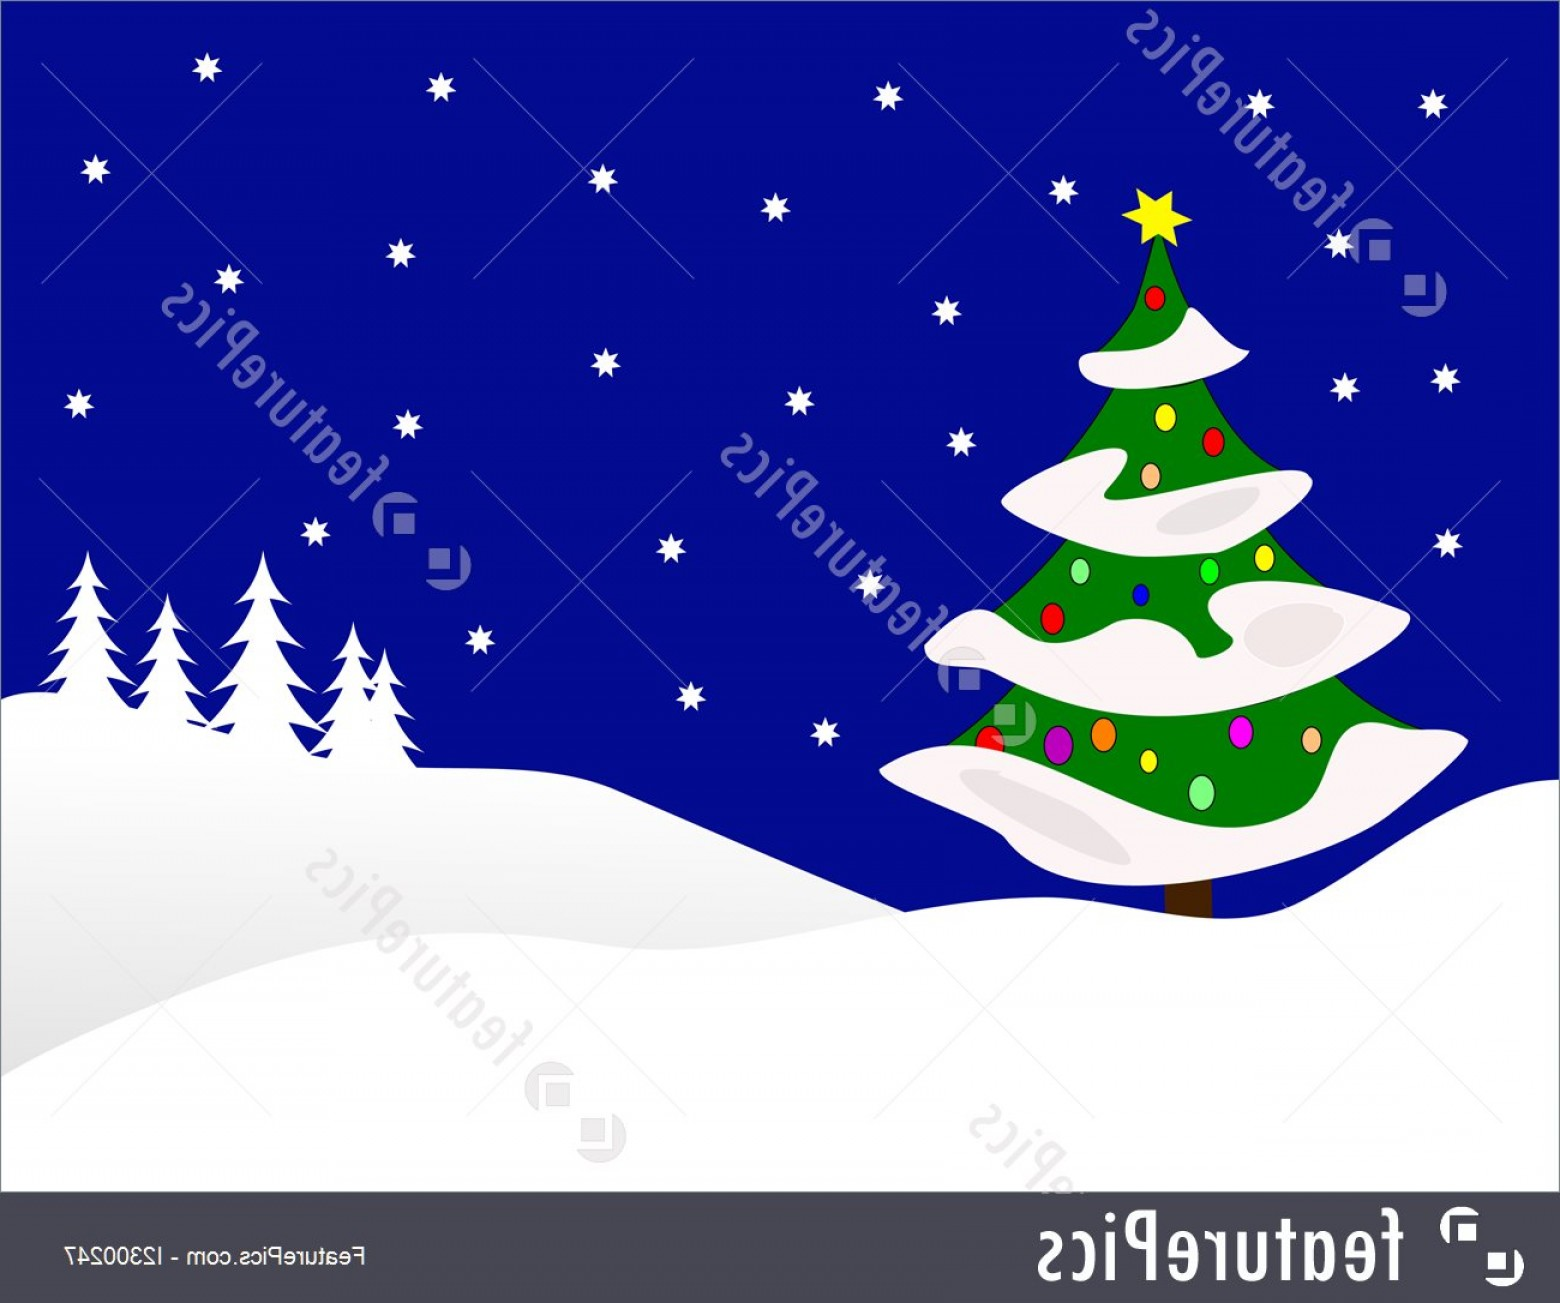 Free Winter Vector: Winter Vector Background Illustration Large Snow Covered